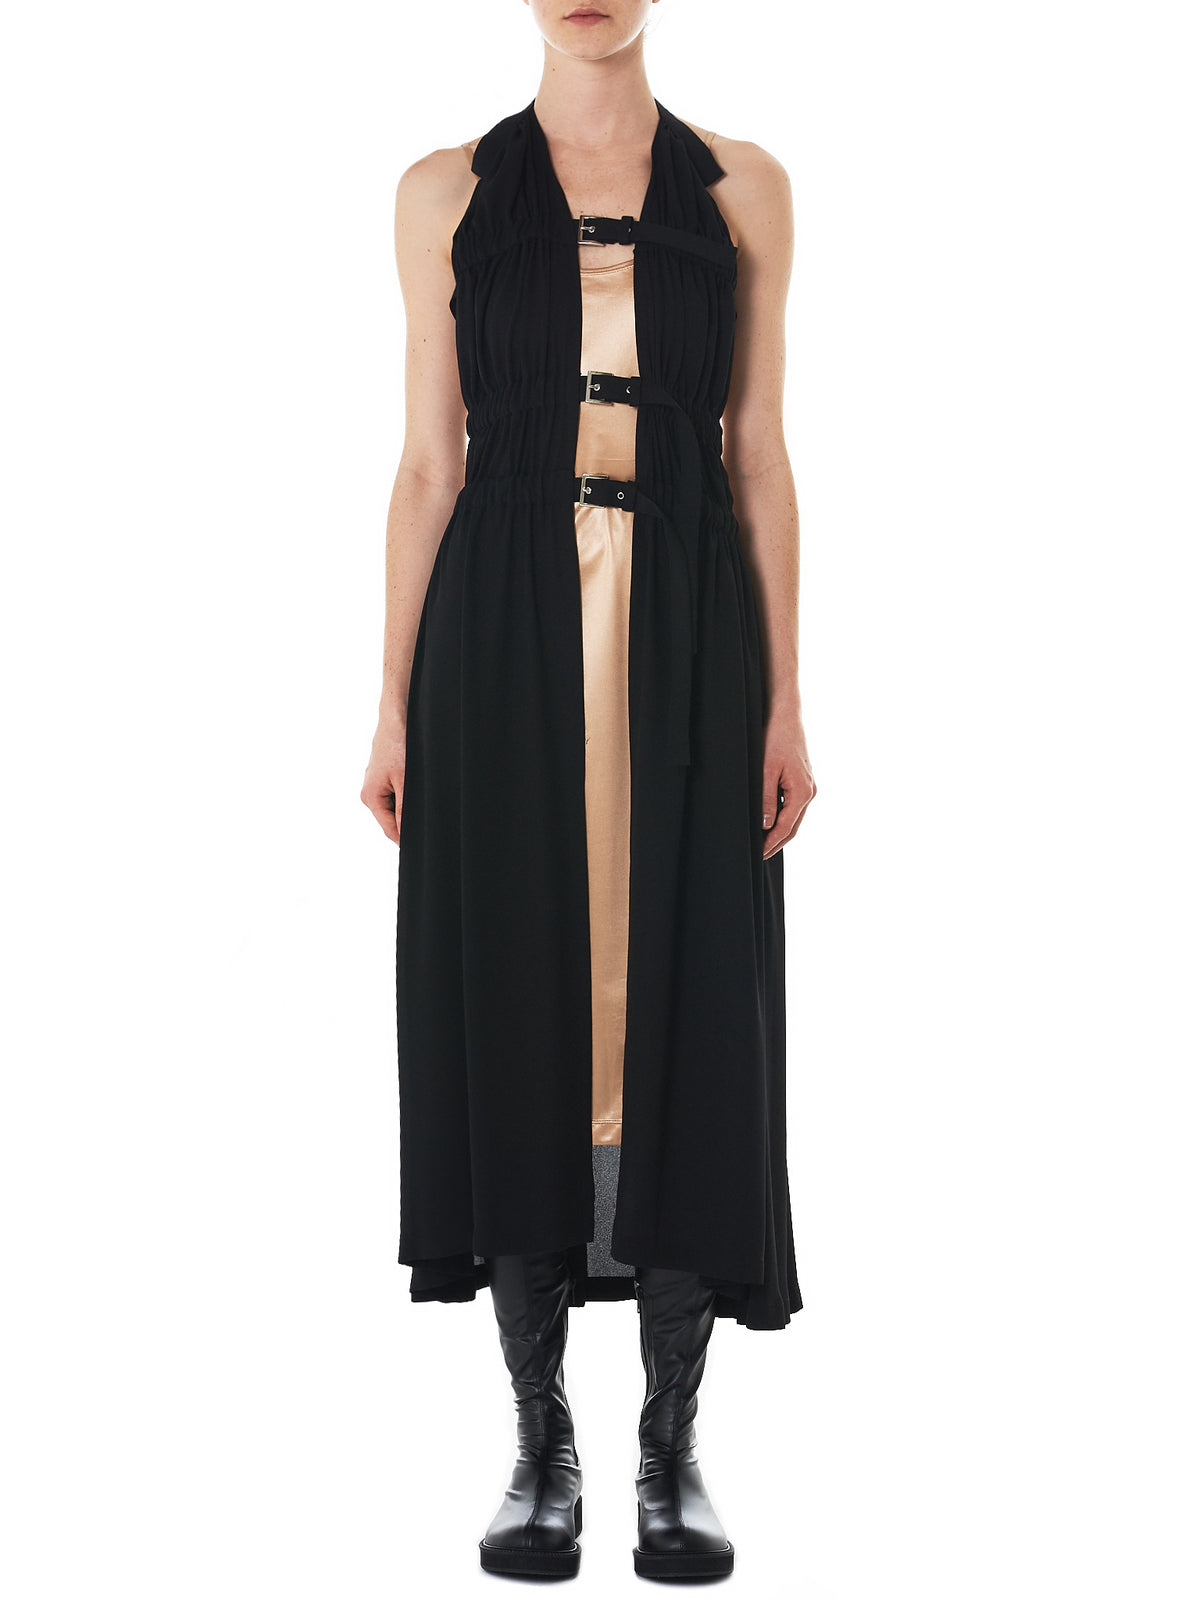 Draped Long Apron (3A-A002-051-1)